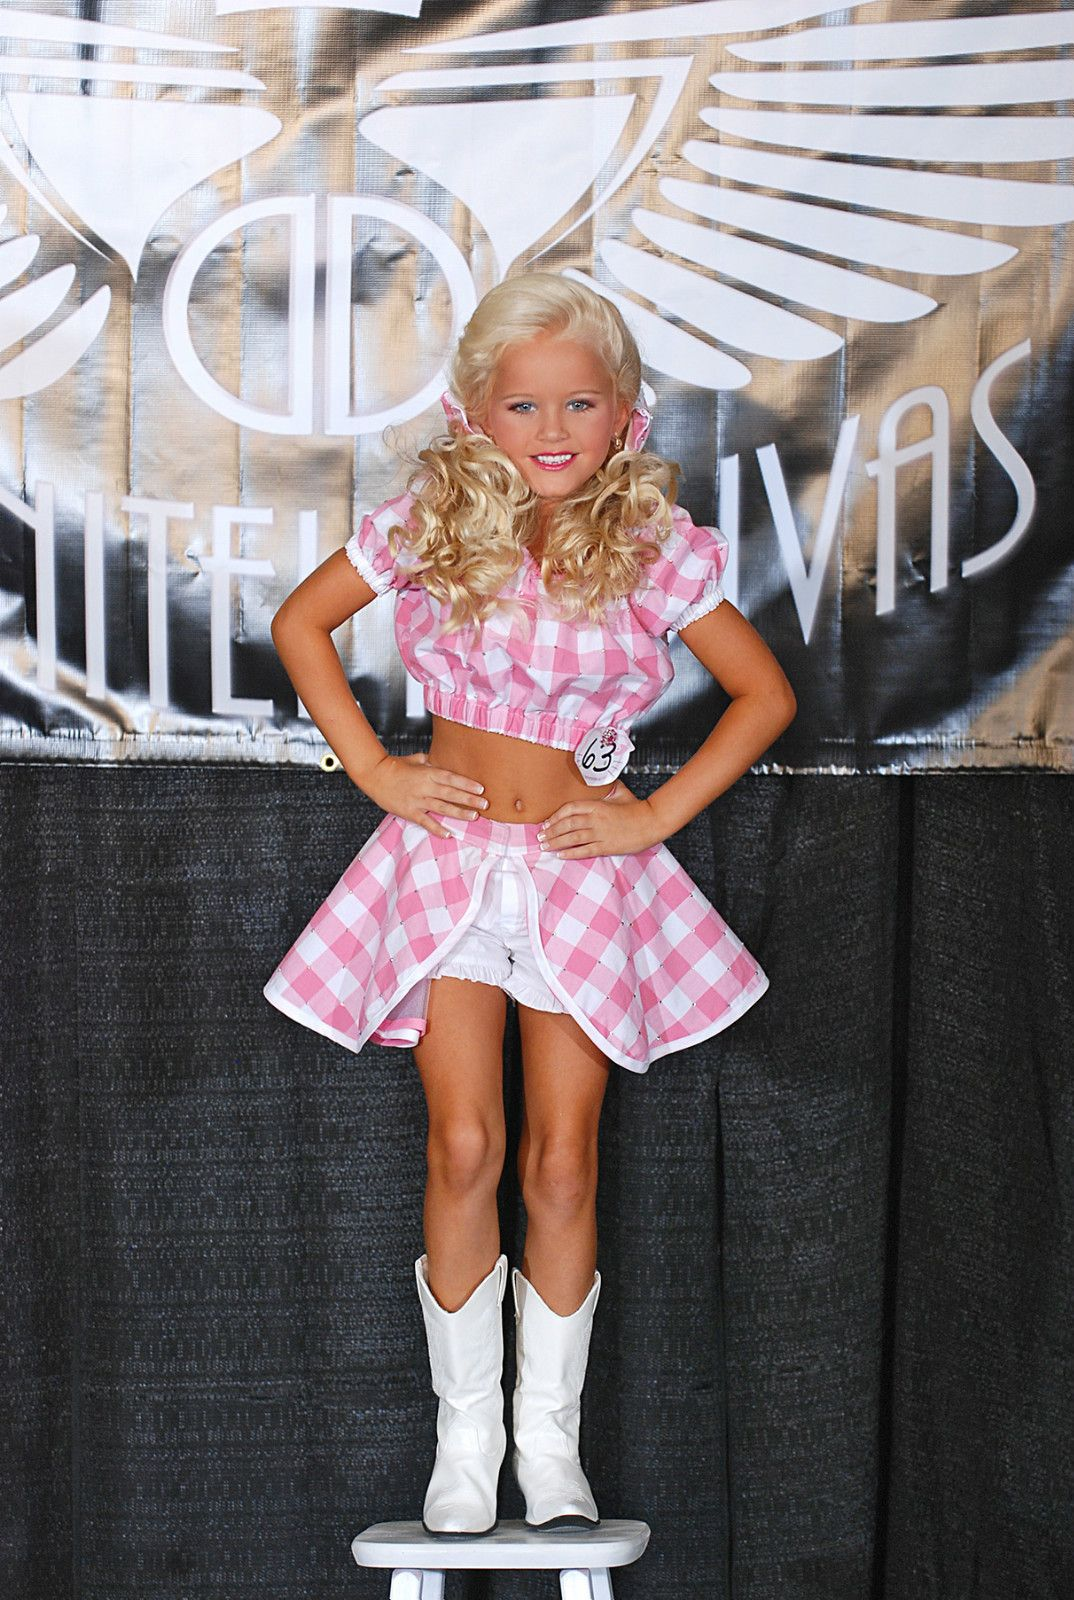 Super Cute Custom National Pageant Ooak Ooc Outfit Of